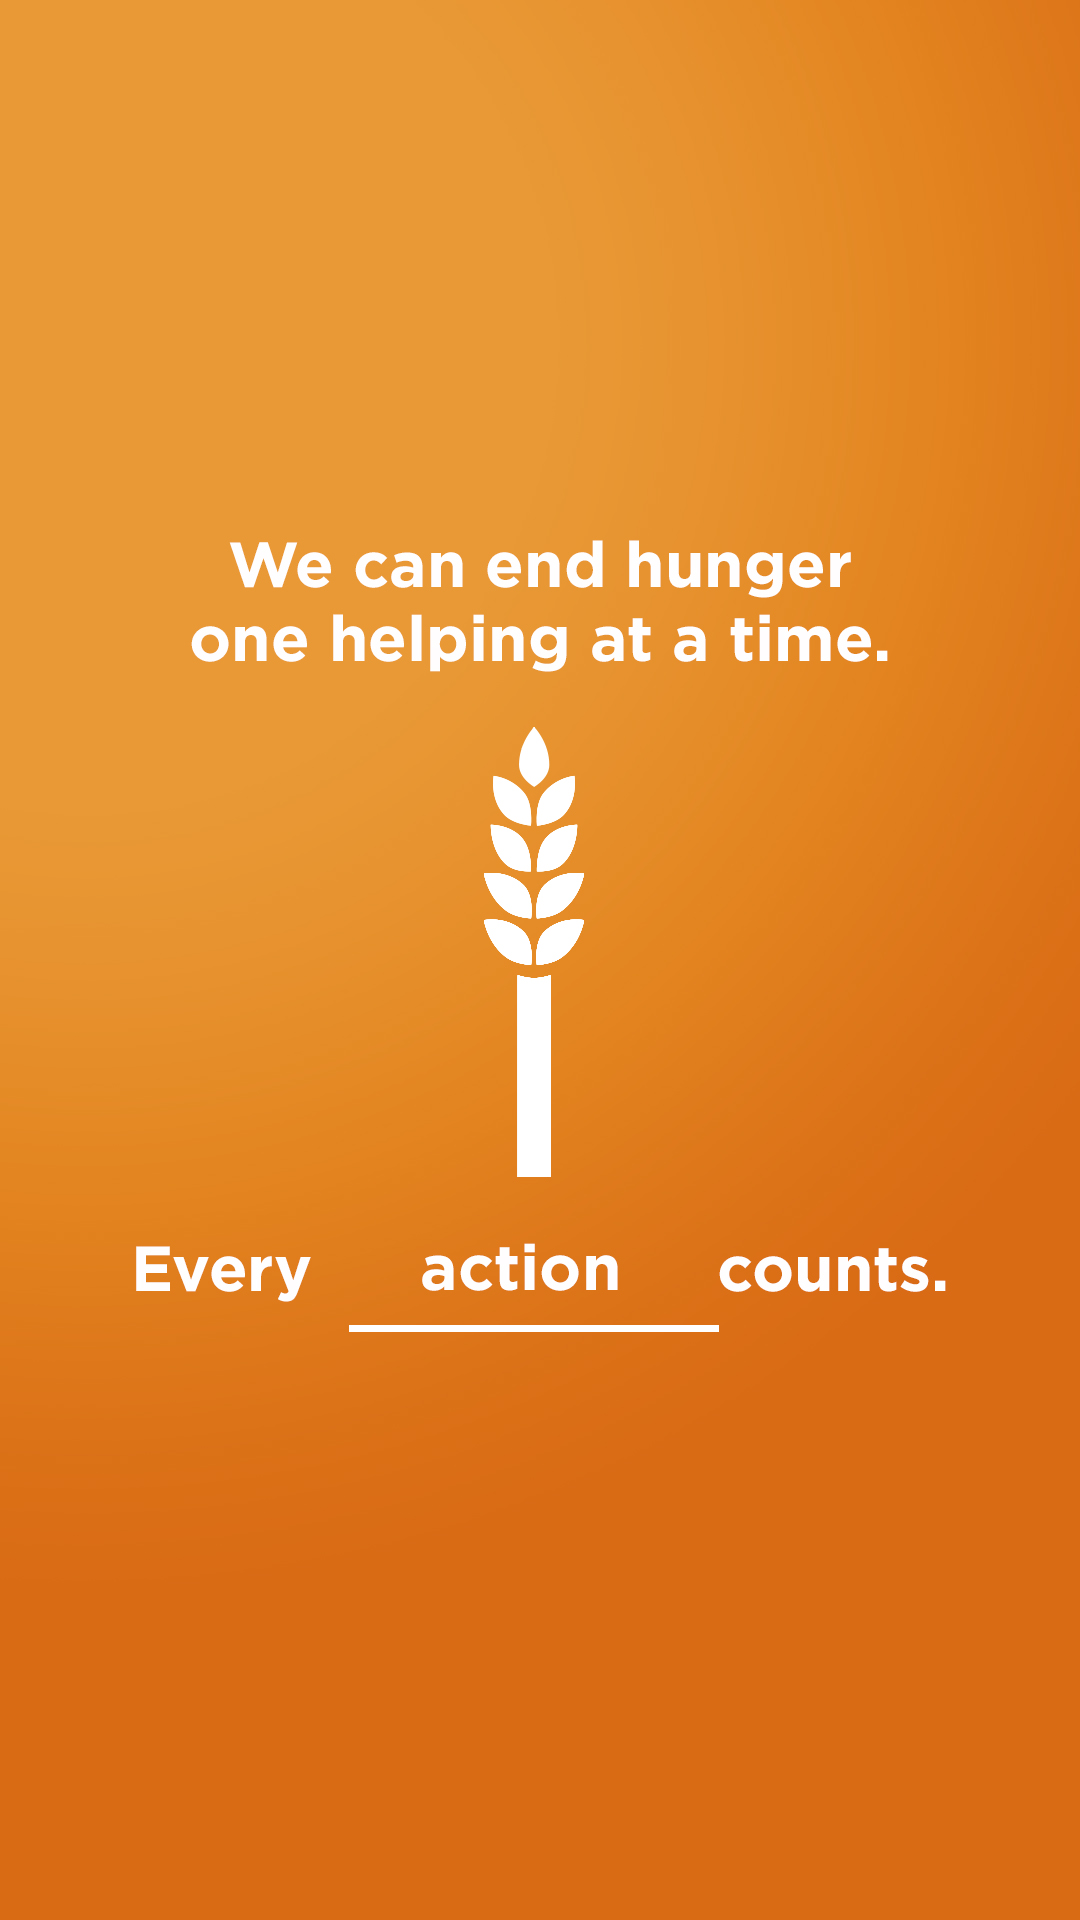 We can end hunger - action